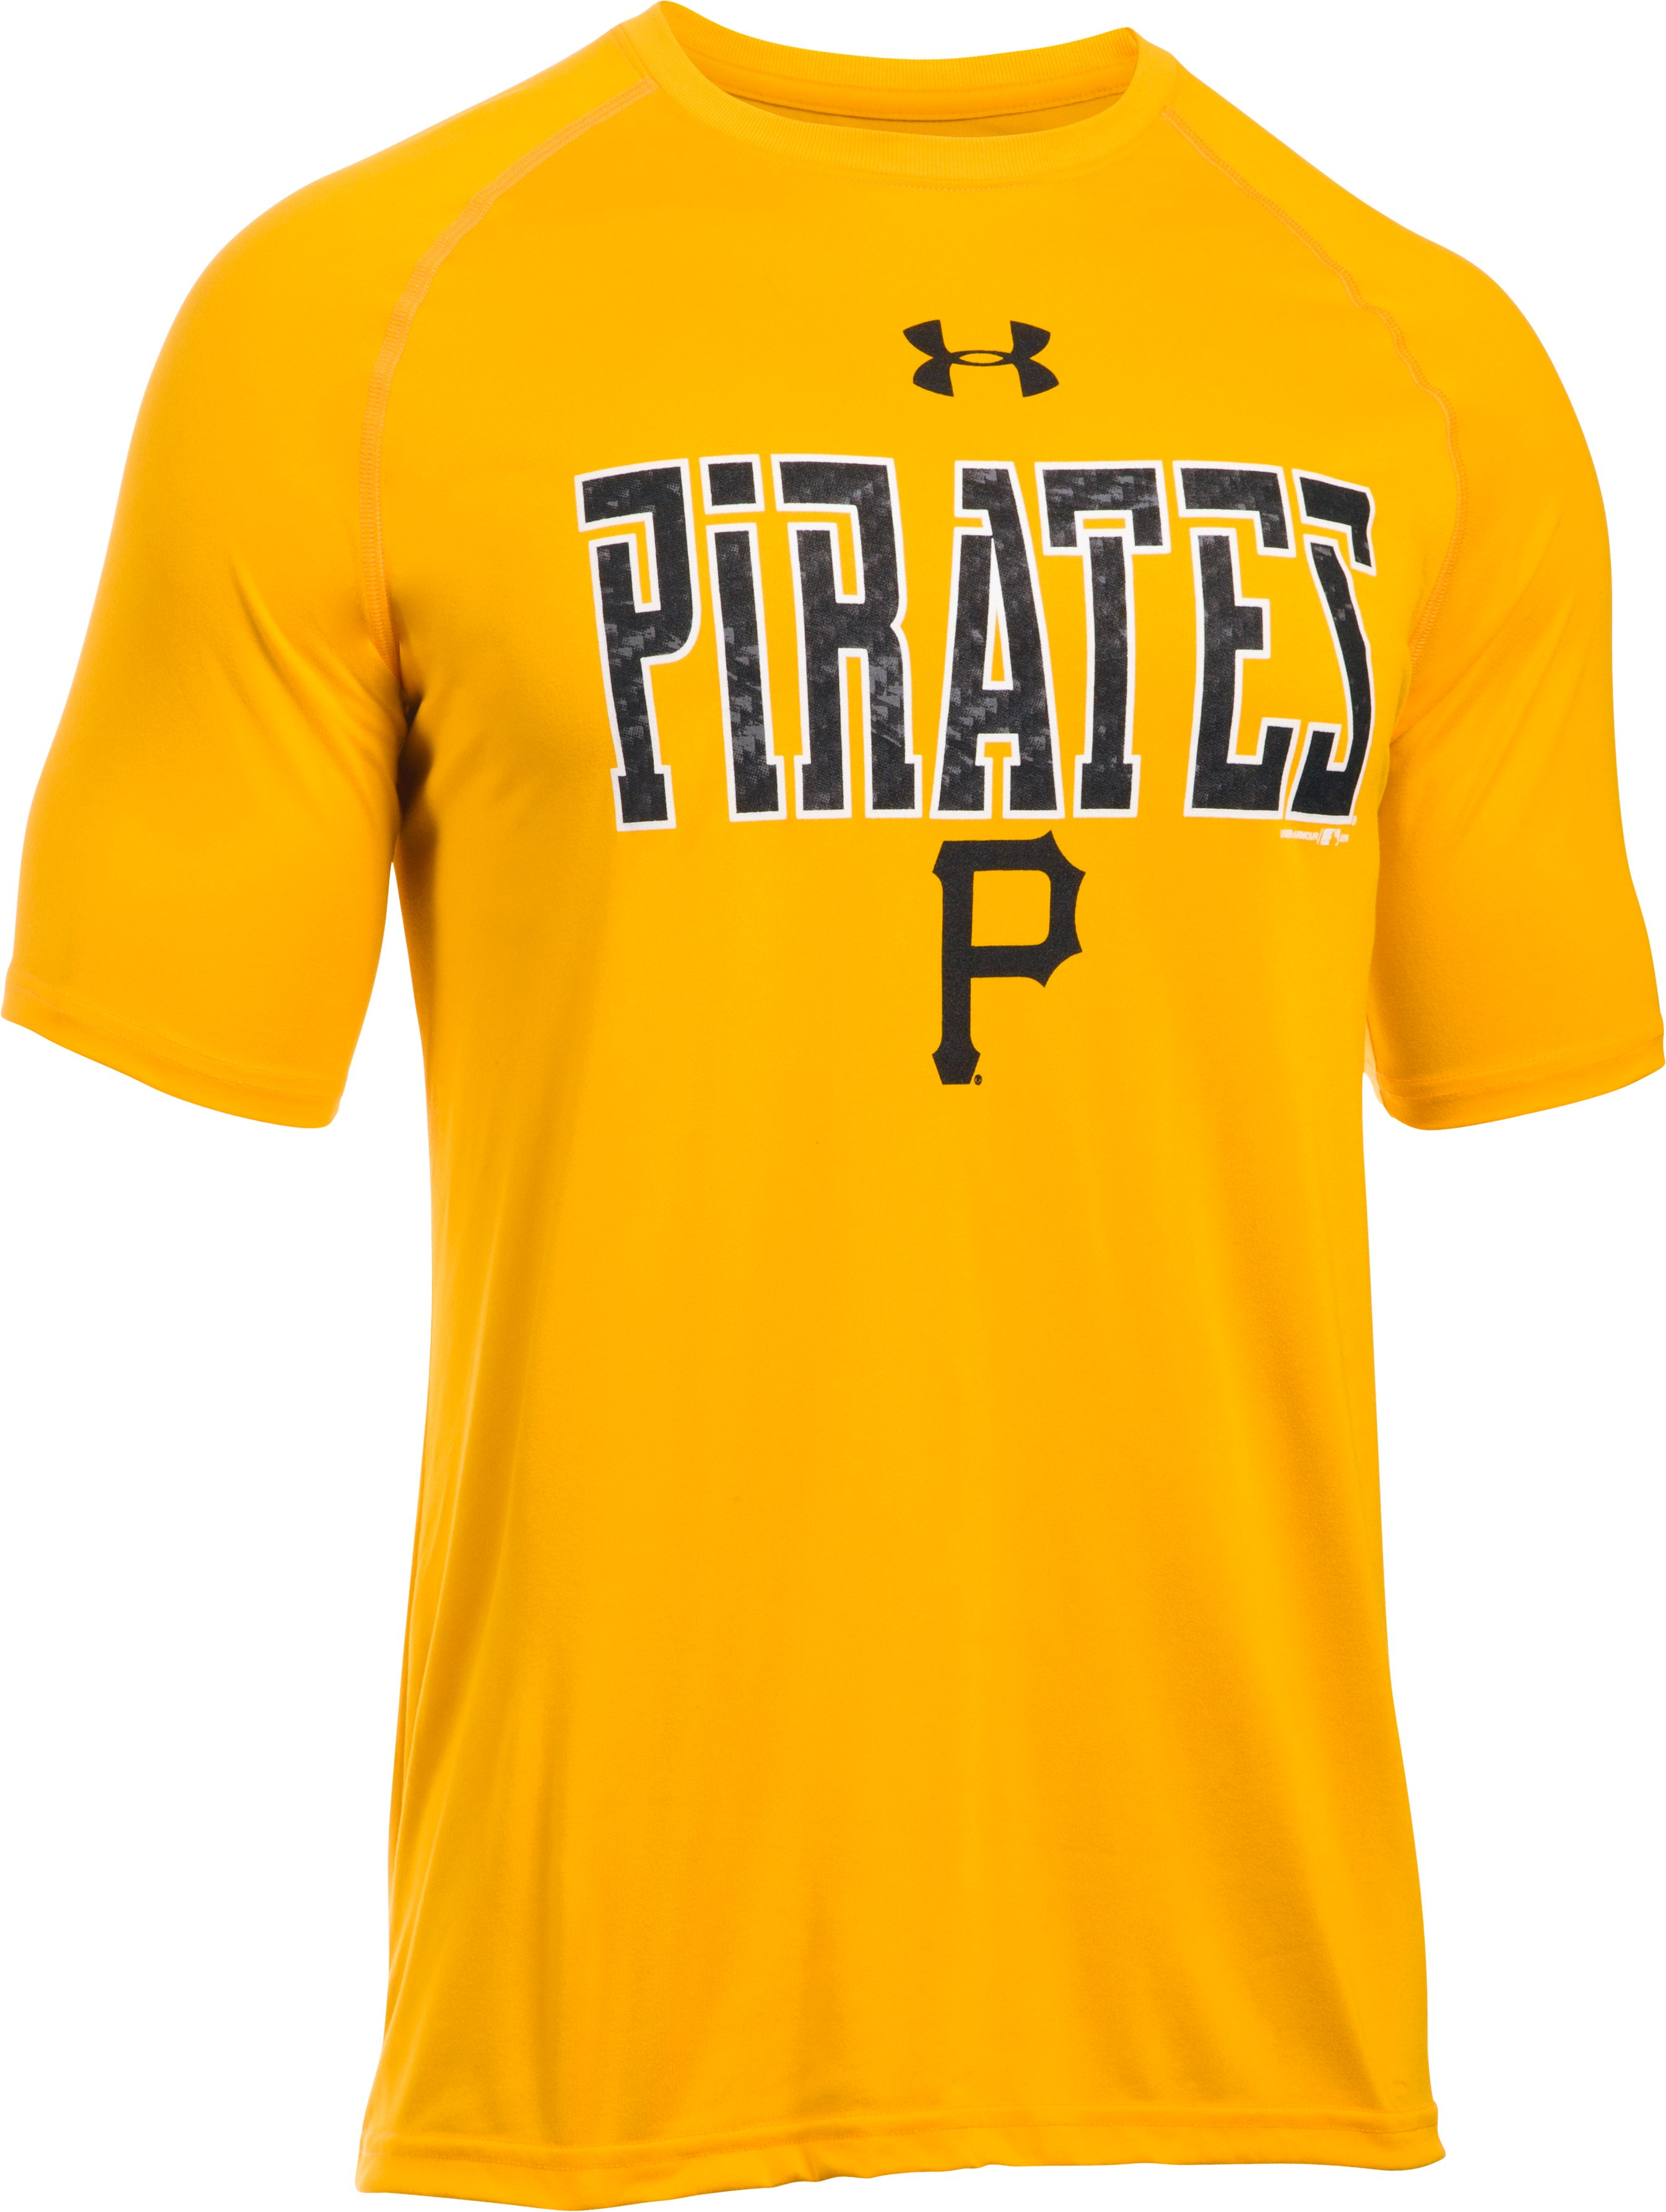 Men's Pittsburgh Pirates Team Tech™ T-Shirt, Steeltown Gold, undefined